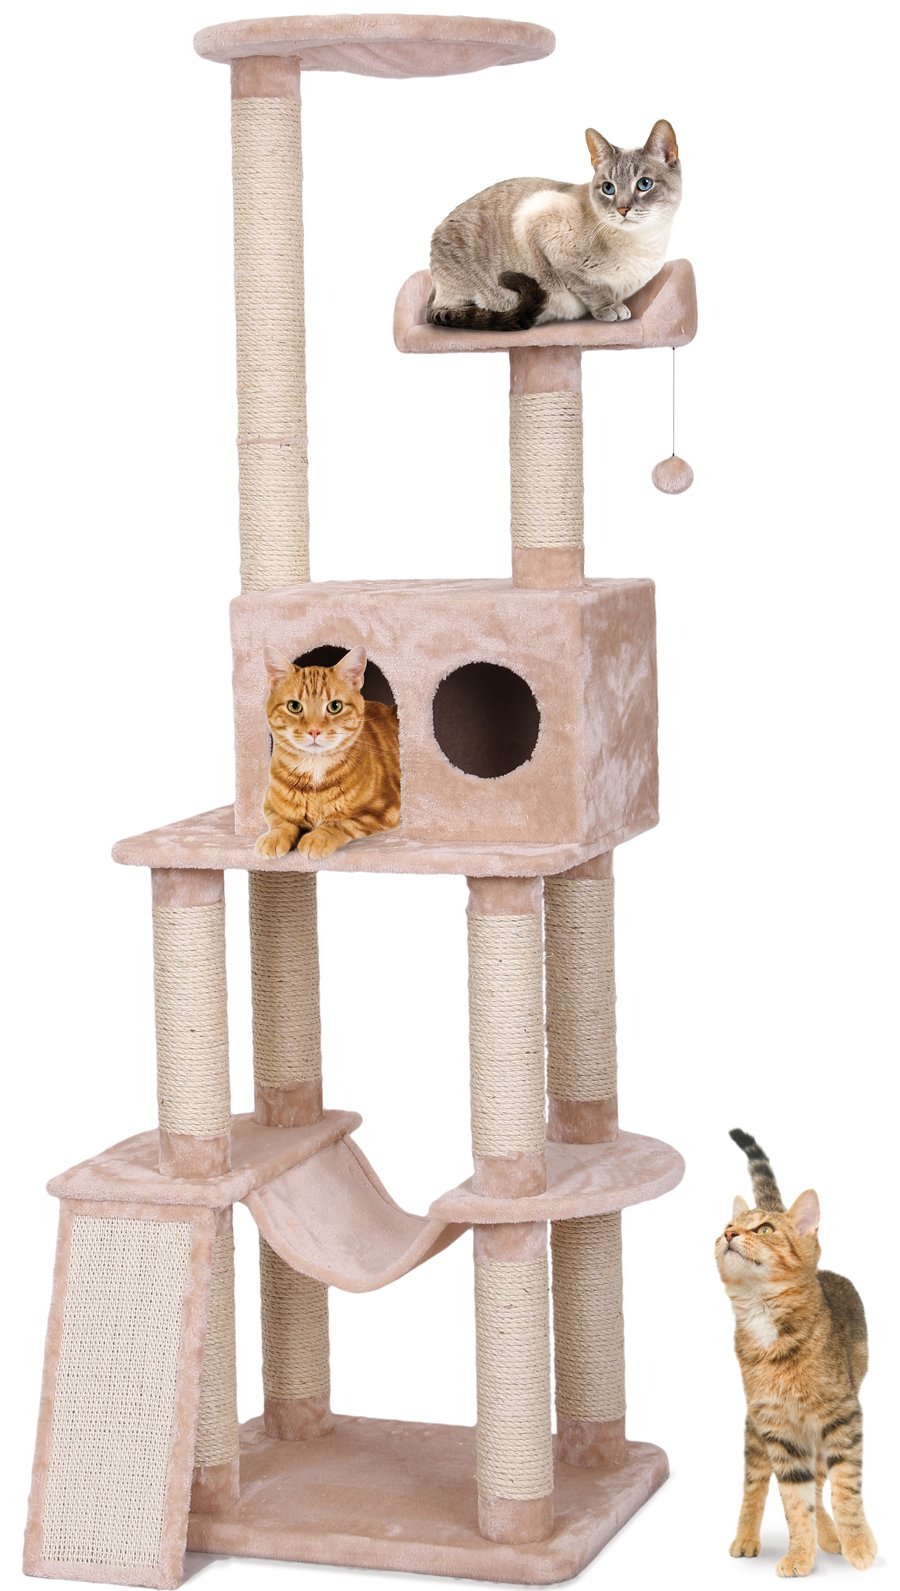 Penn Plax Contemporary Cat Tower, 4 Levels with Hide-Away, Cat Toy, and Climbing Ramp, 73 Inch Height